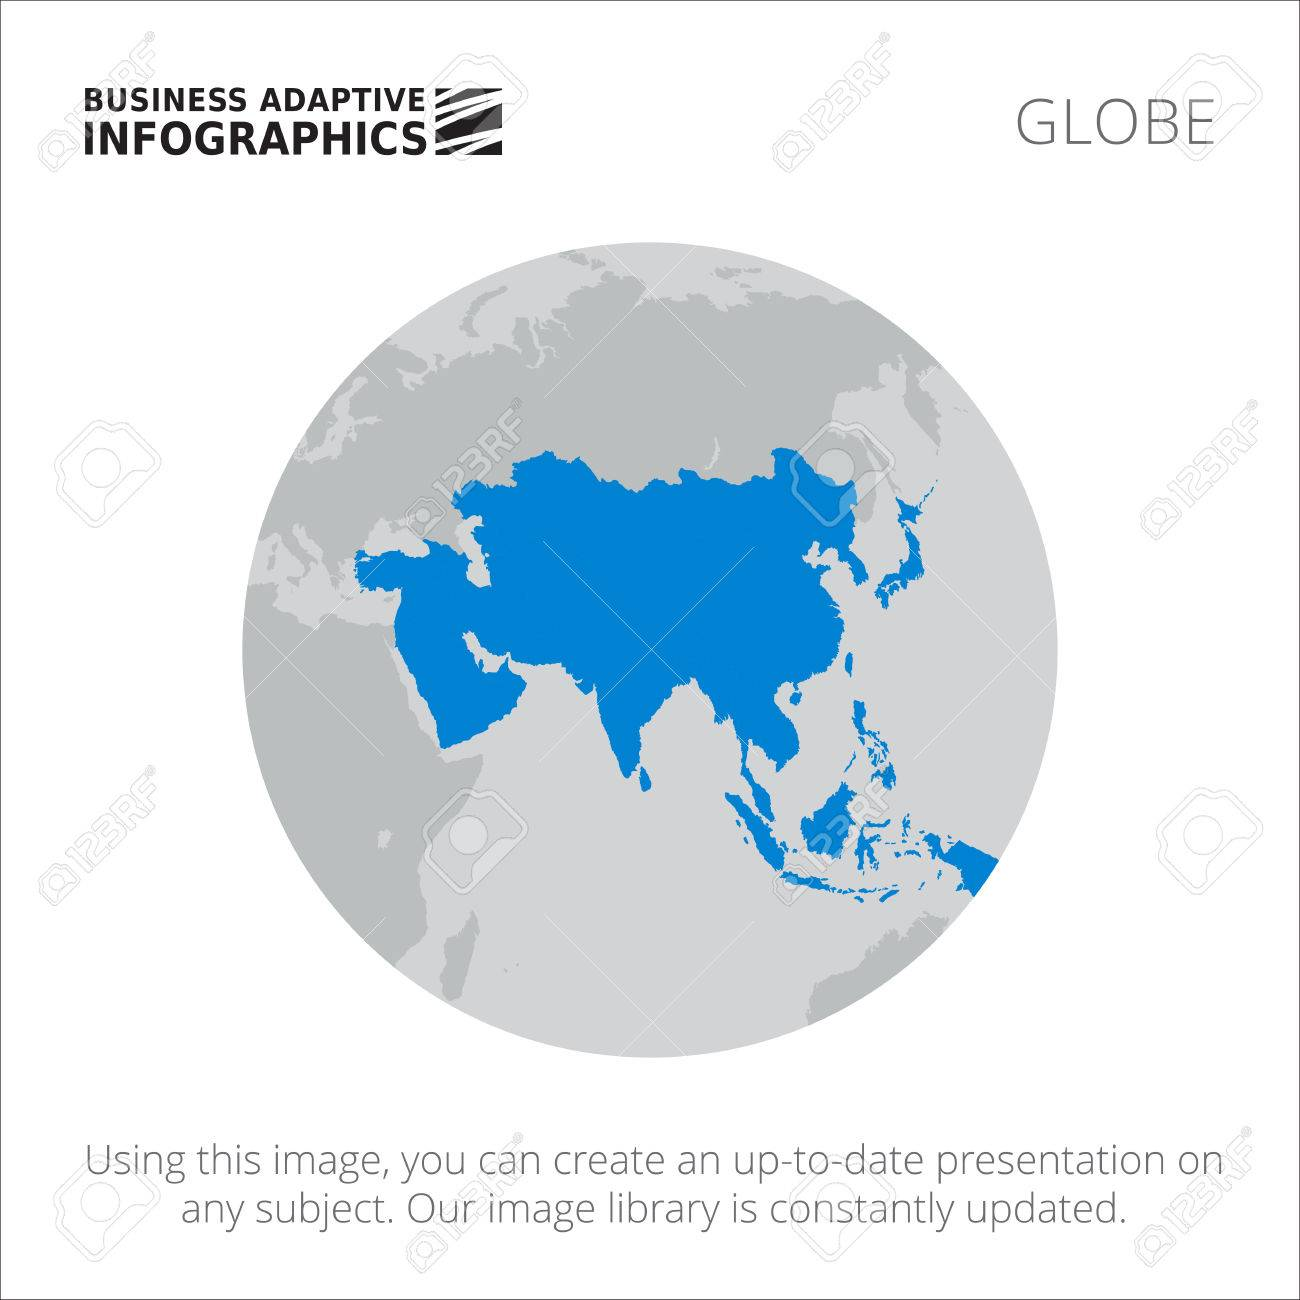 Map Of Asia Template.Presentation Template With Map Of Asia On Earth Globe